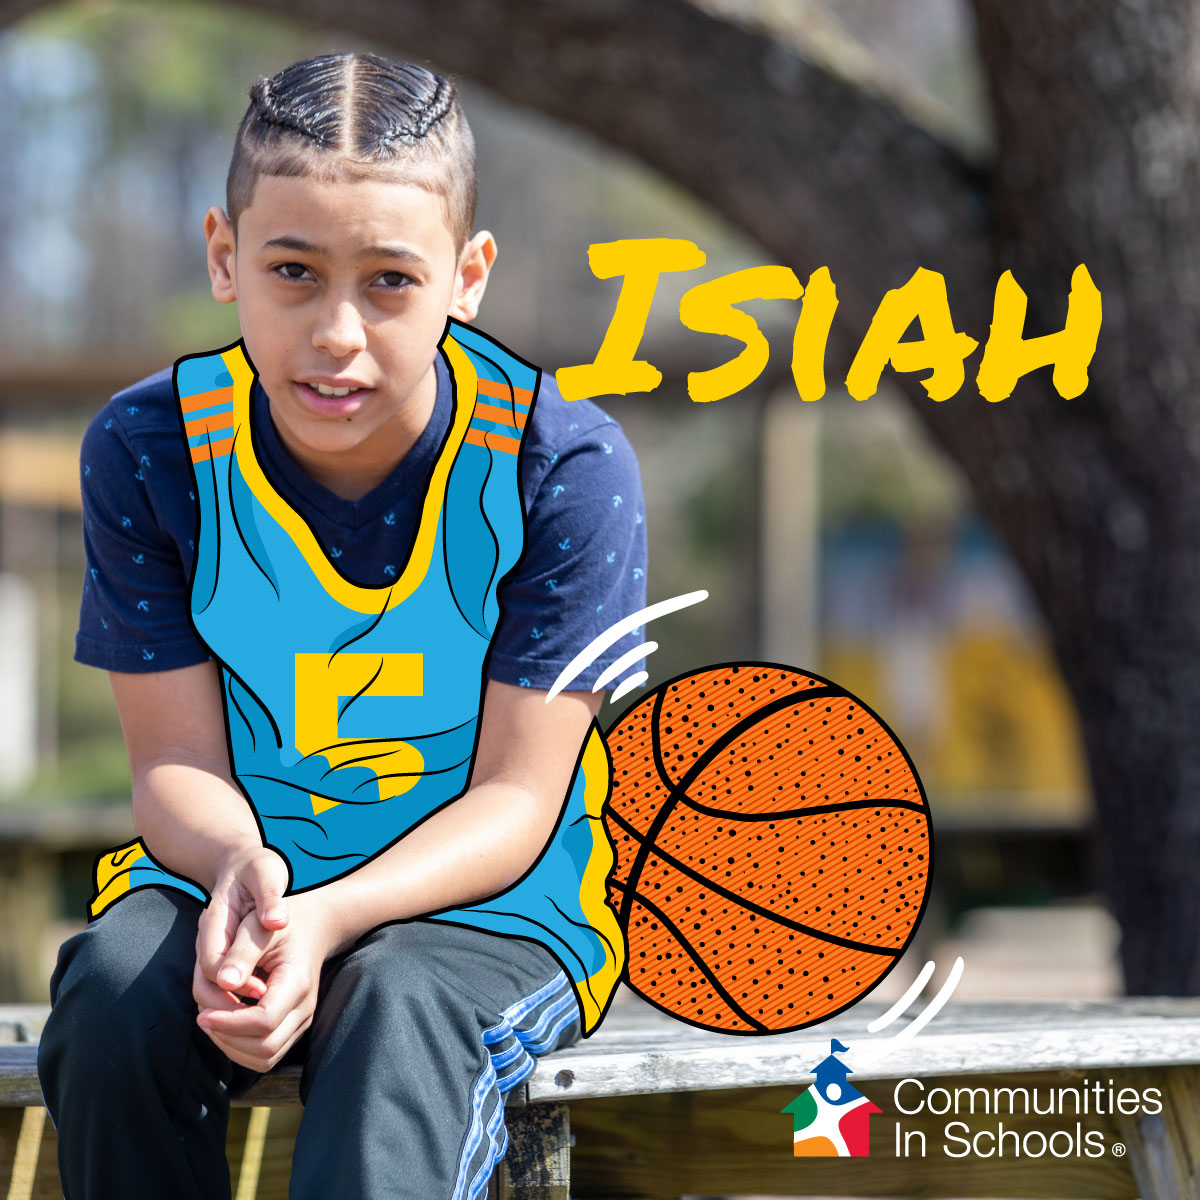 Join Us to Help Students Like Isiah Finish the School Year Strong!